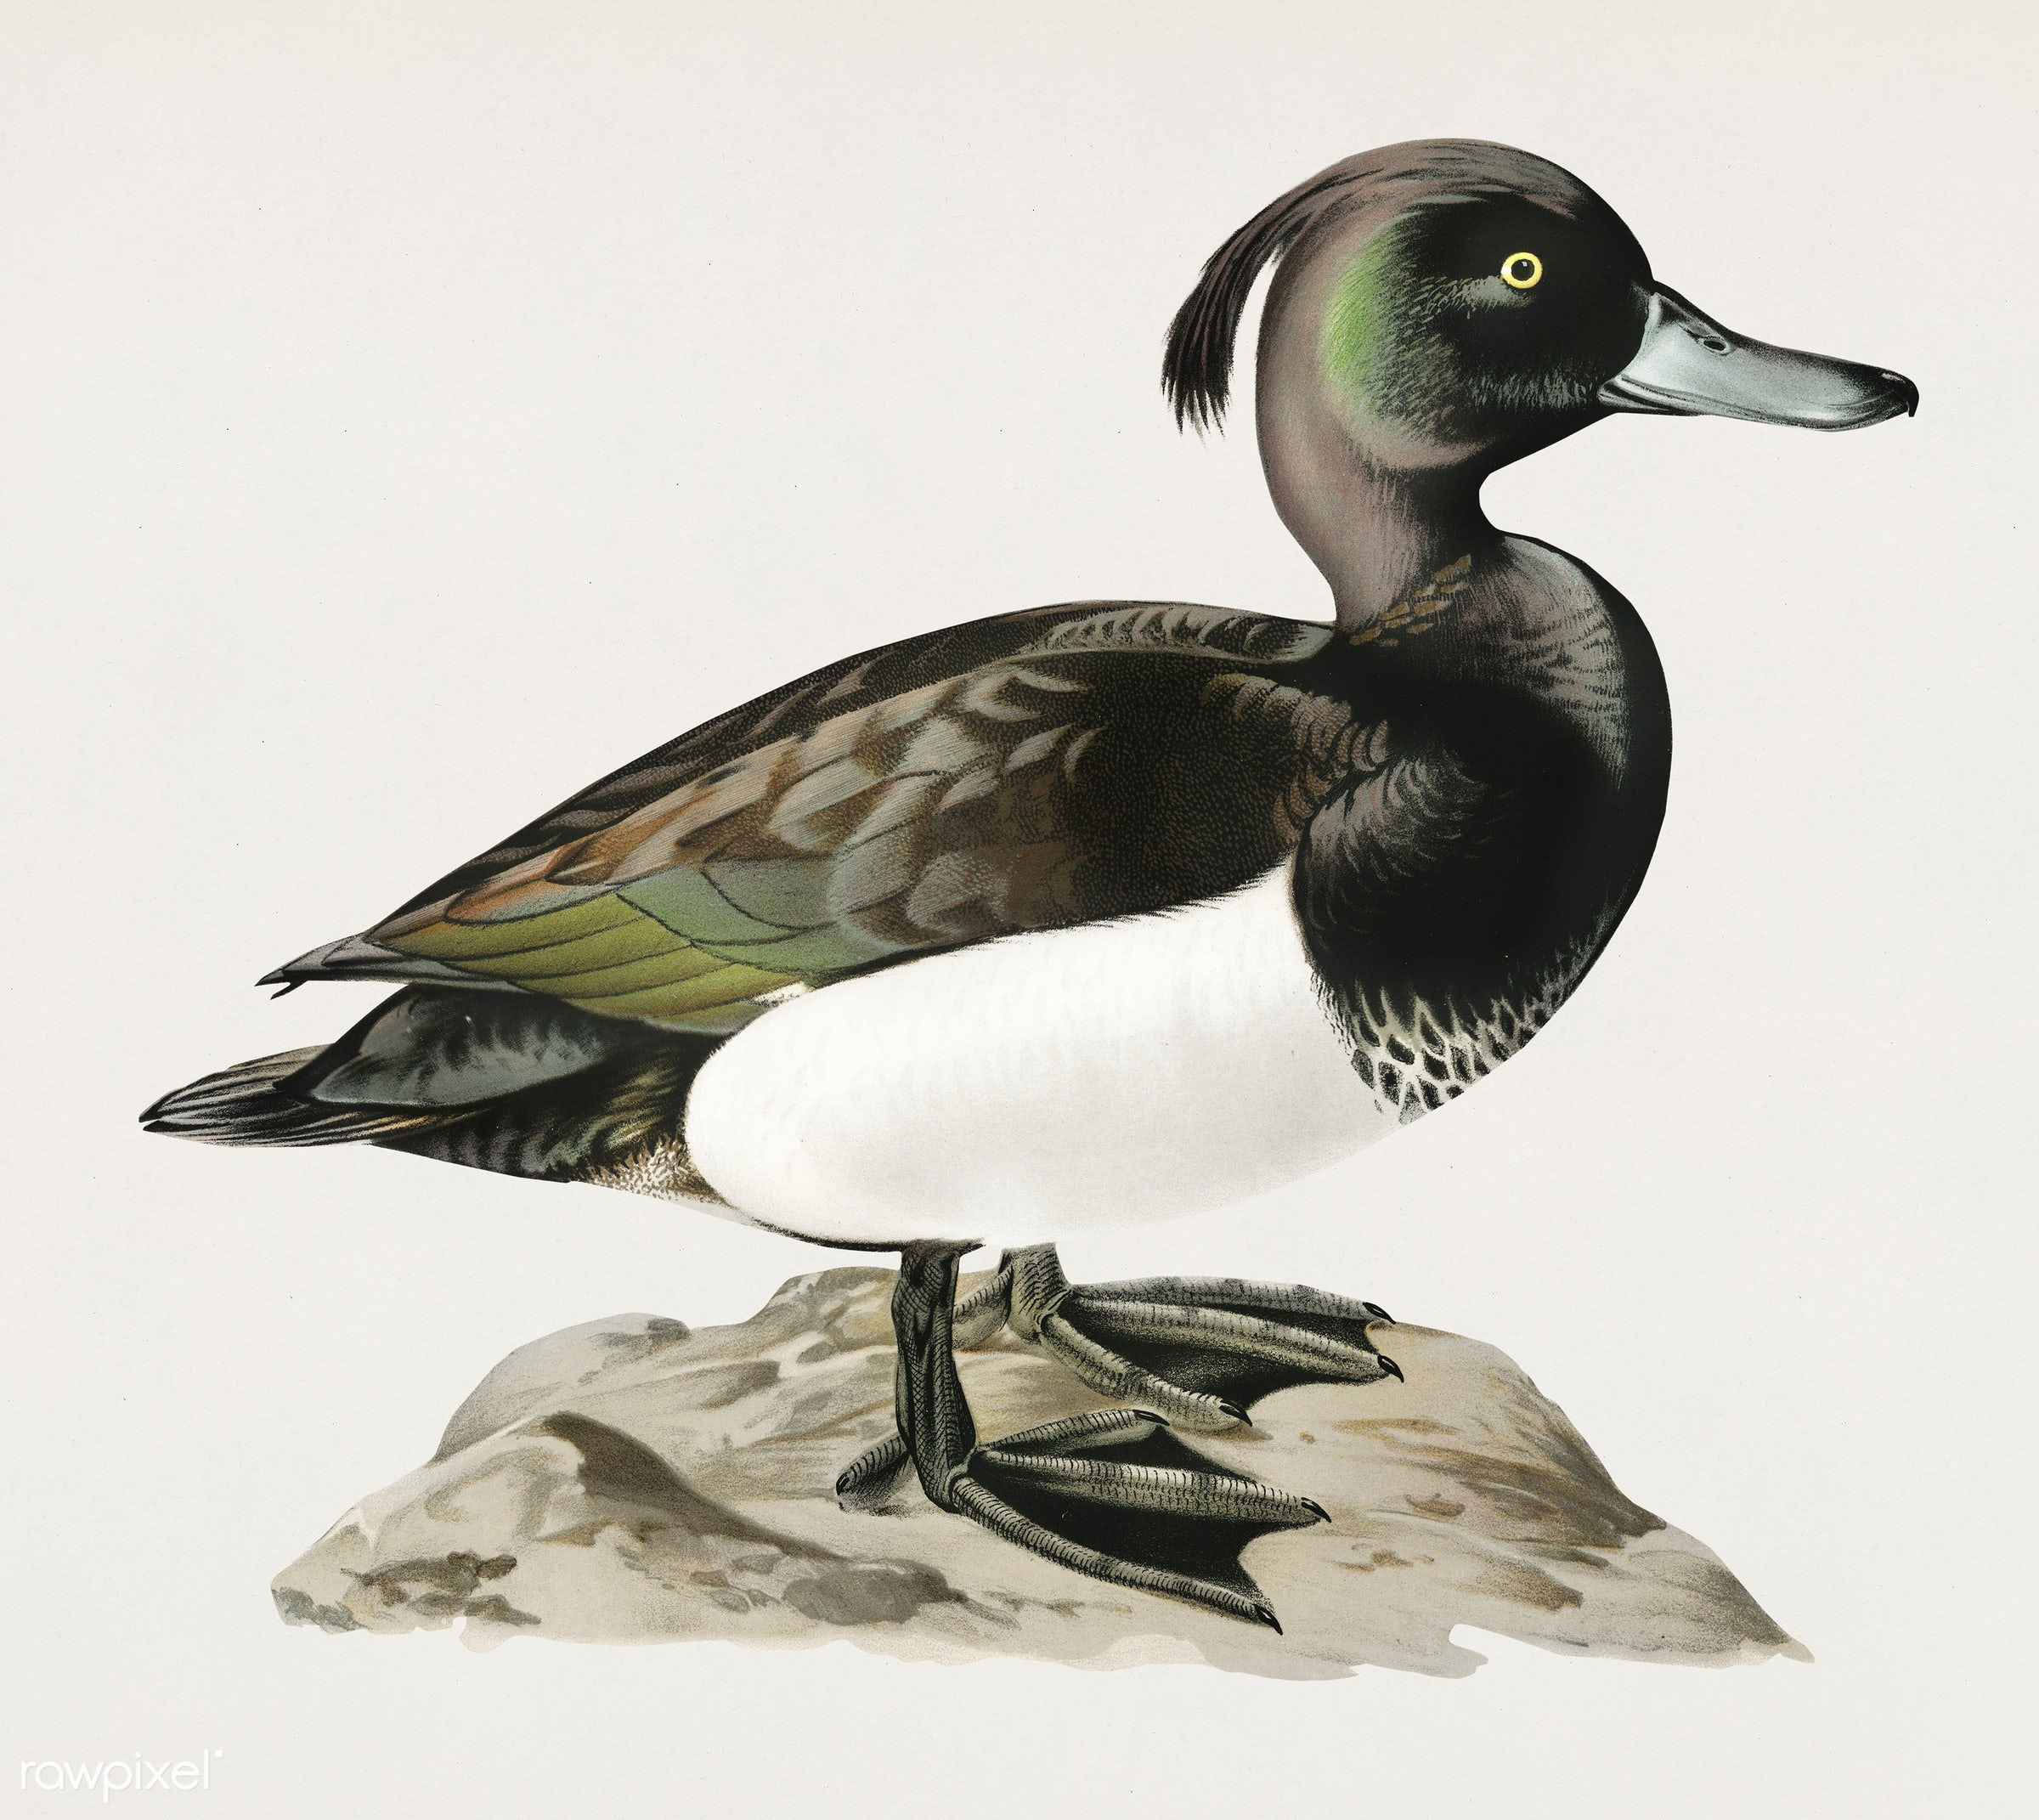 Ferruginous duck male (Nyroca fuligule) illustrated by the von Wright brothers. Digitally enhanced from our own 1929 folio...